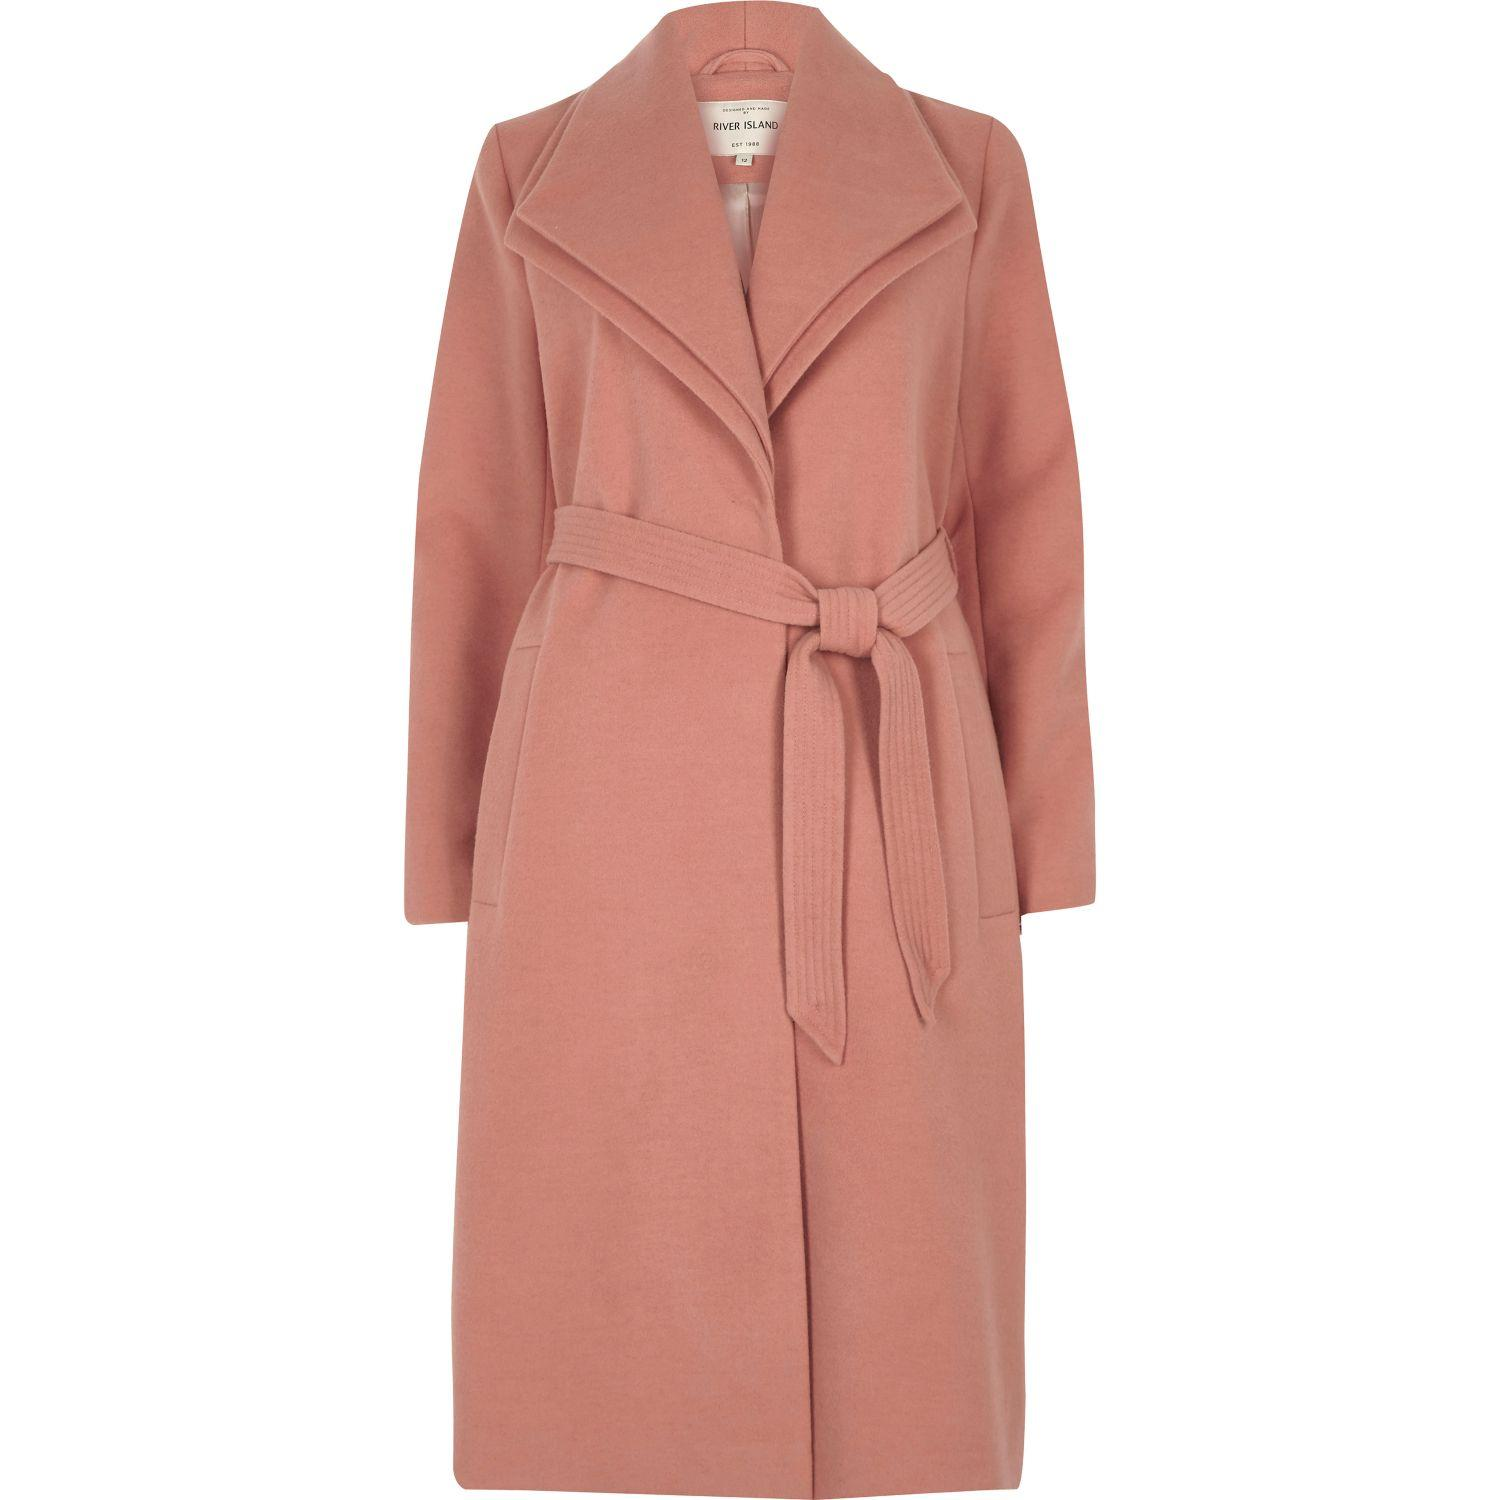 River island Dark Pink Double Collar Coat in Pink | Lyst